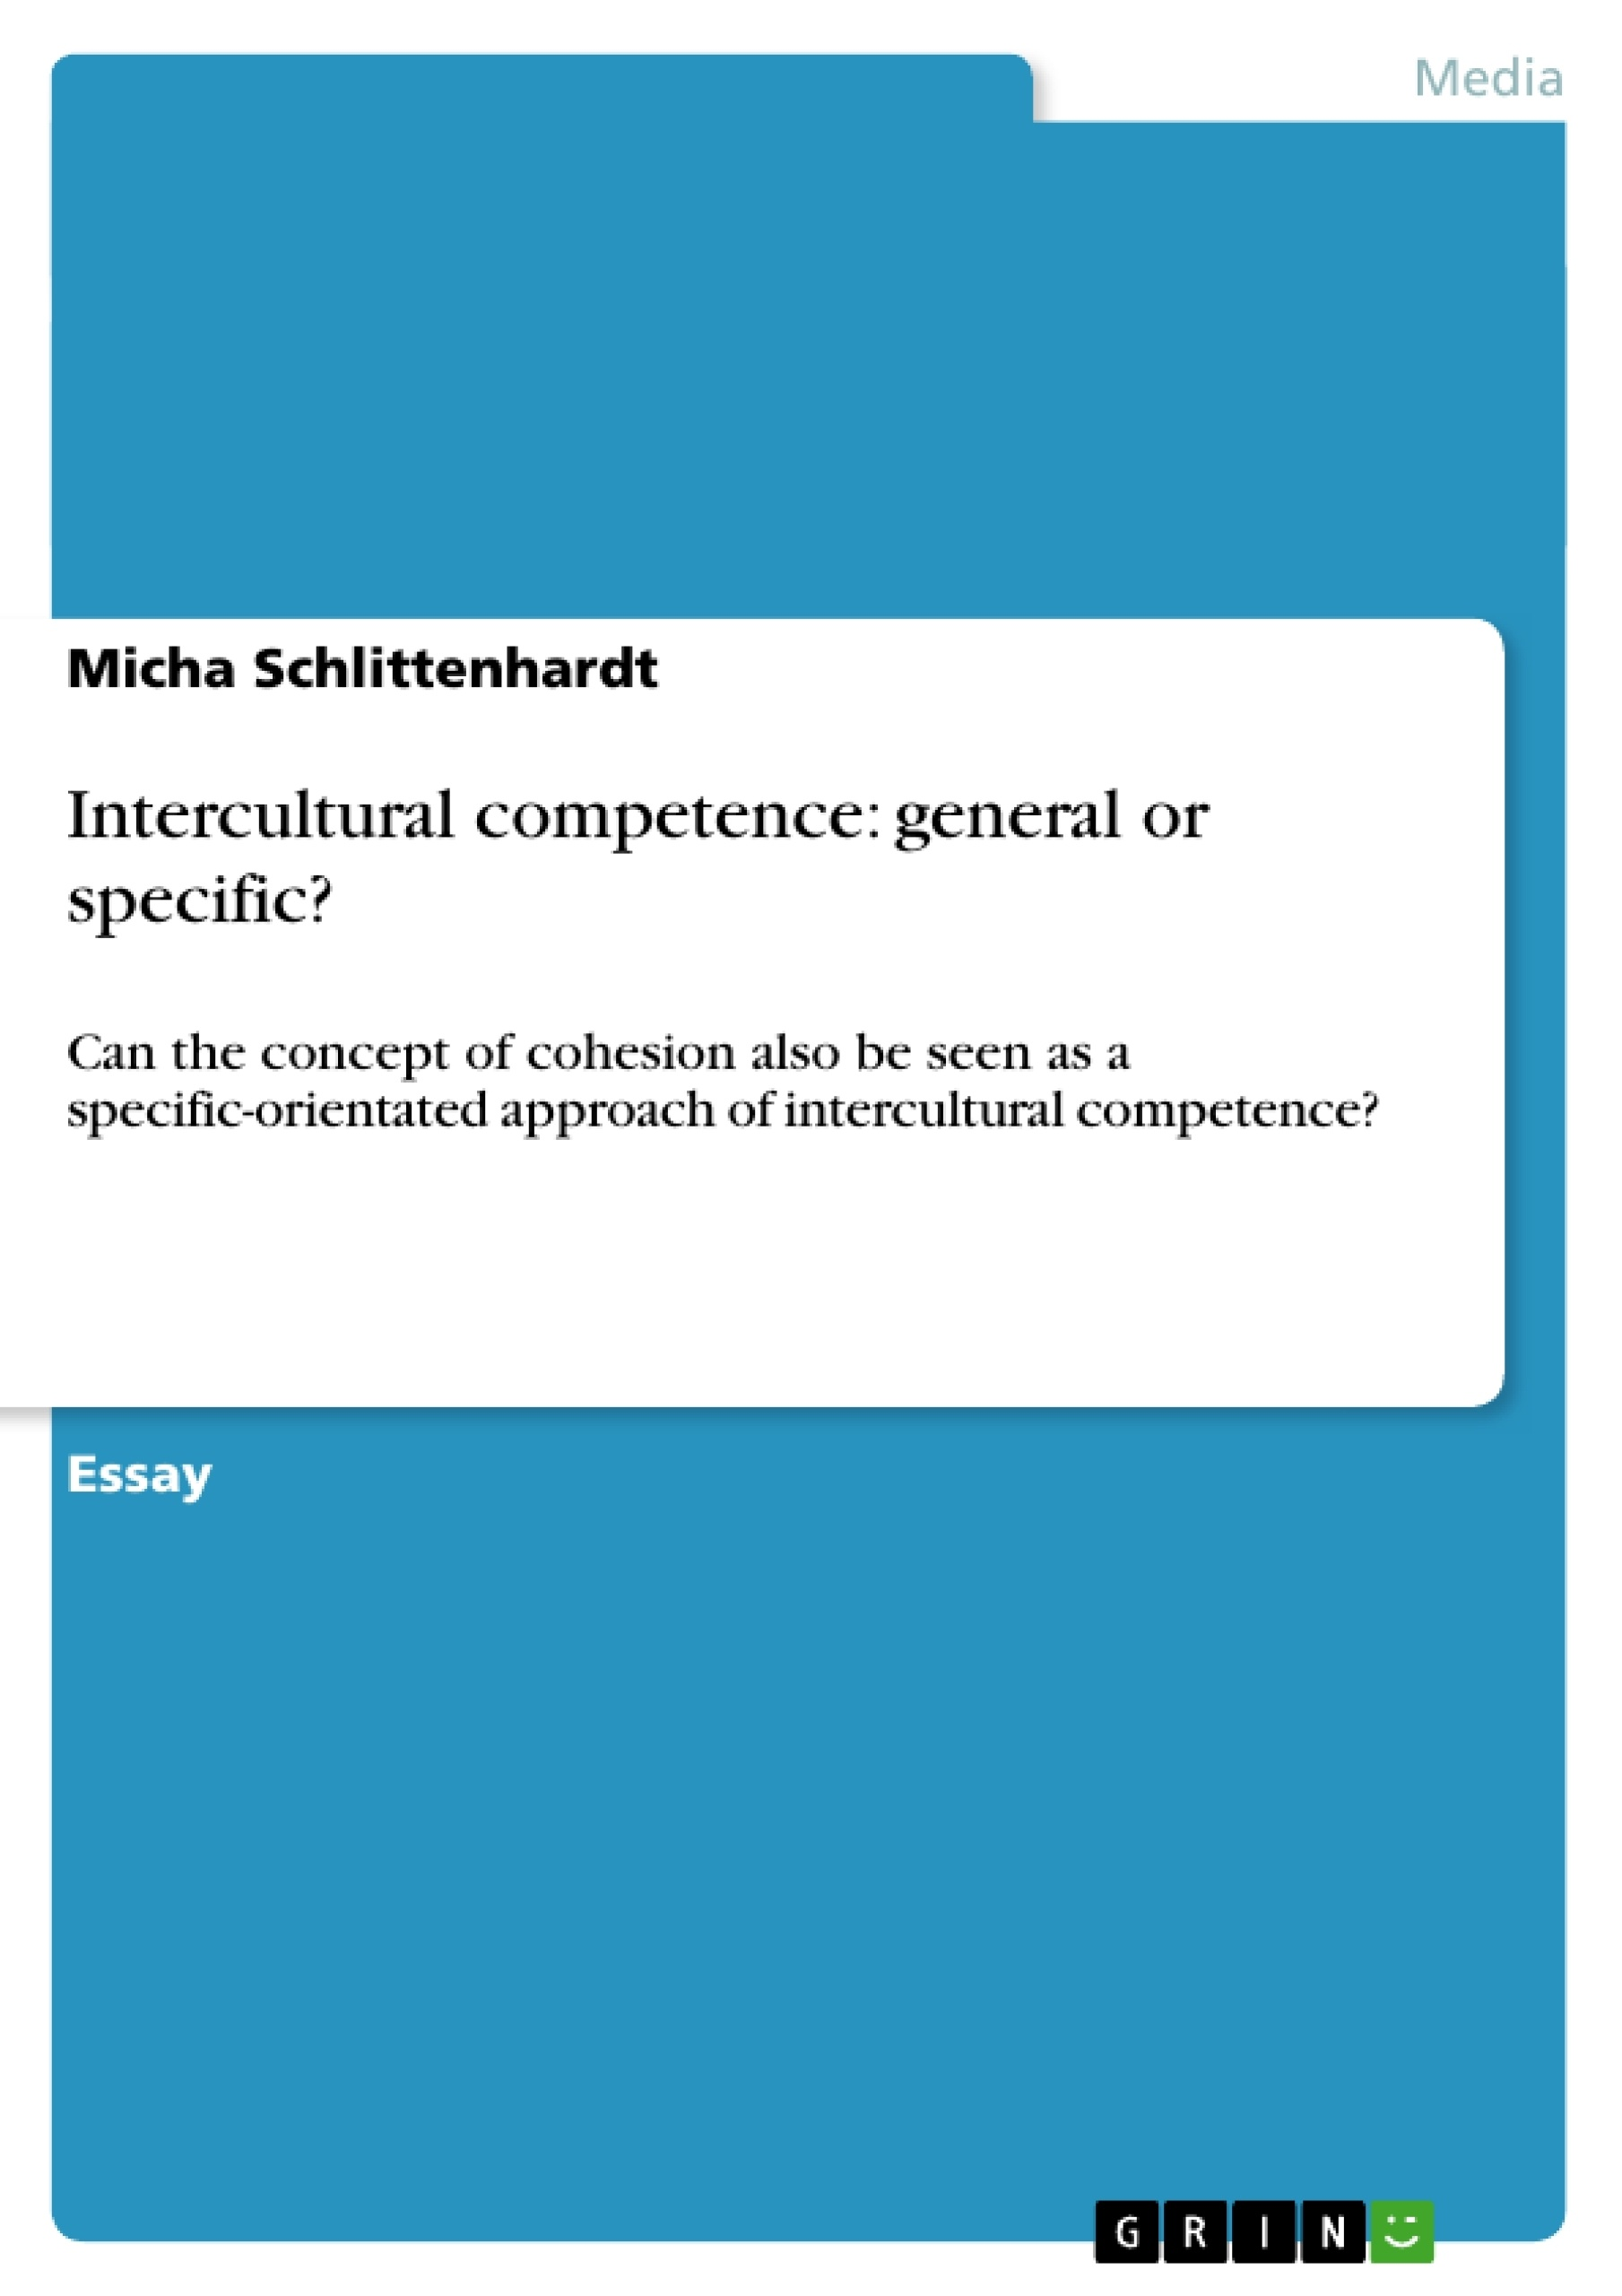 Title: Intercultural competence: general or specific?